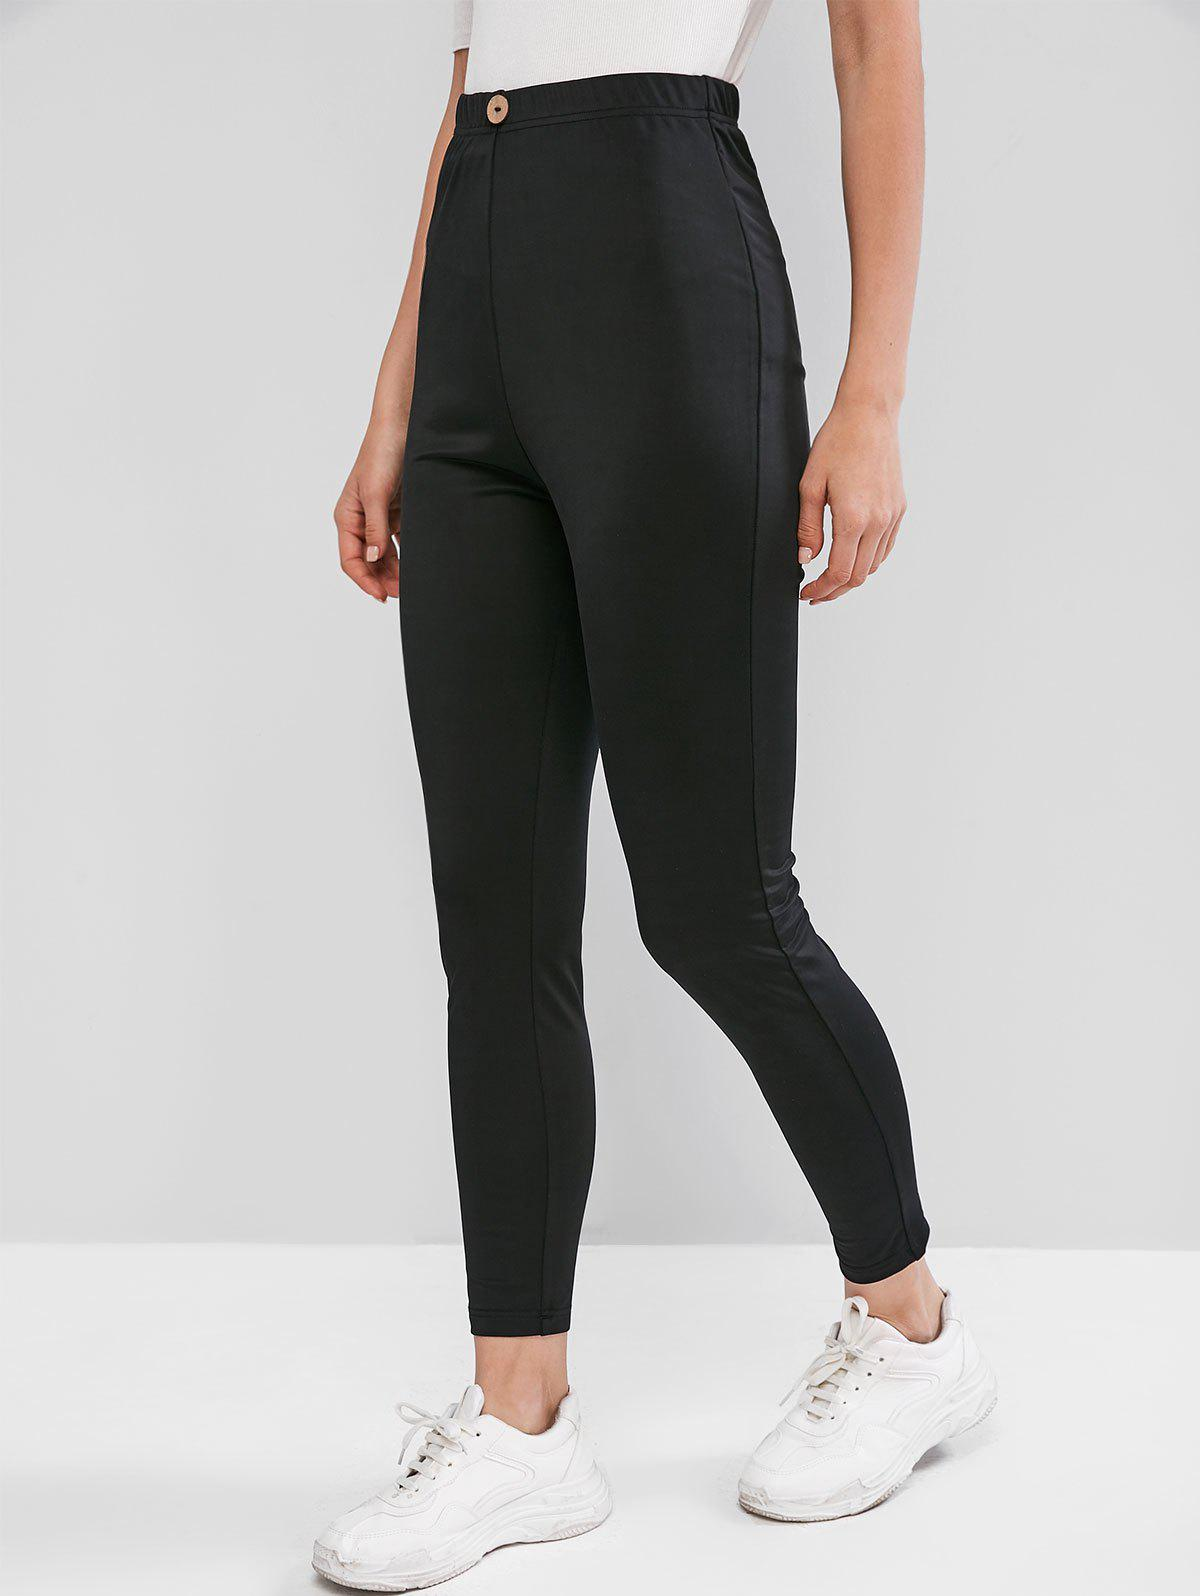 Mock Button Solid Fitted Leggings - BLACK S